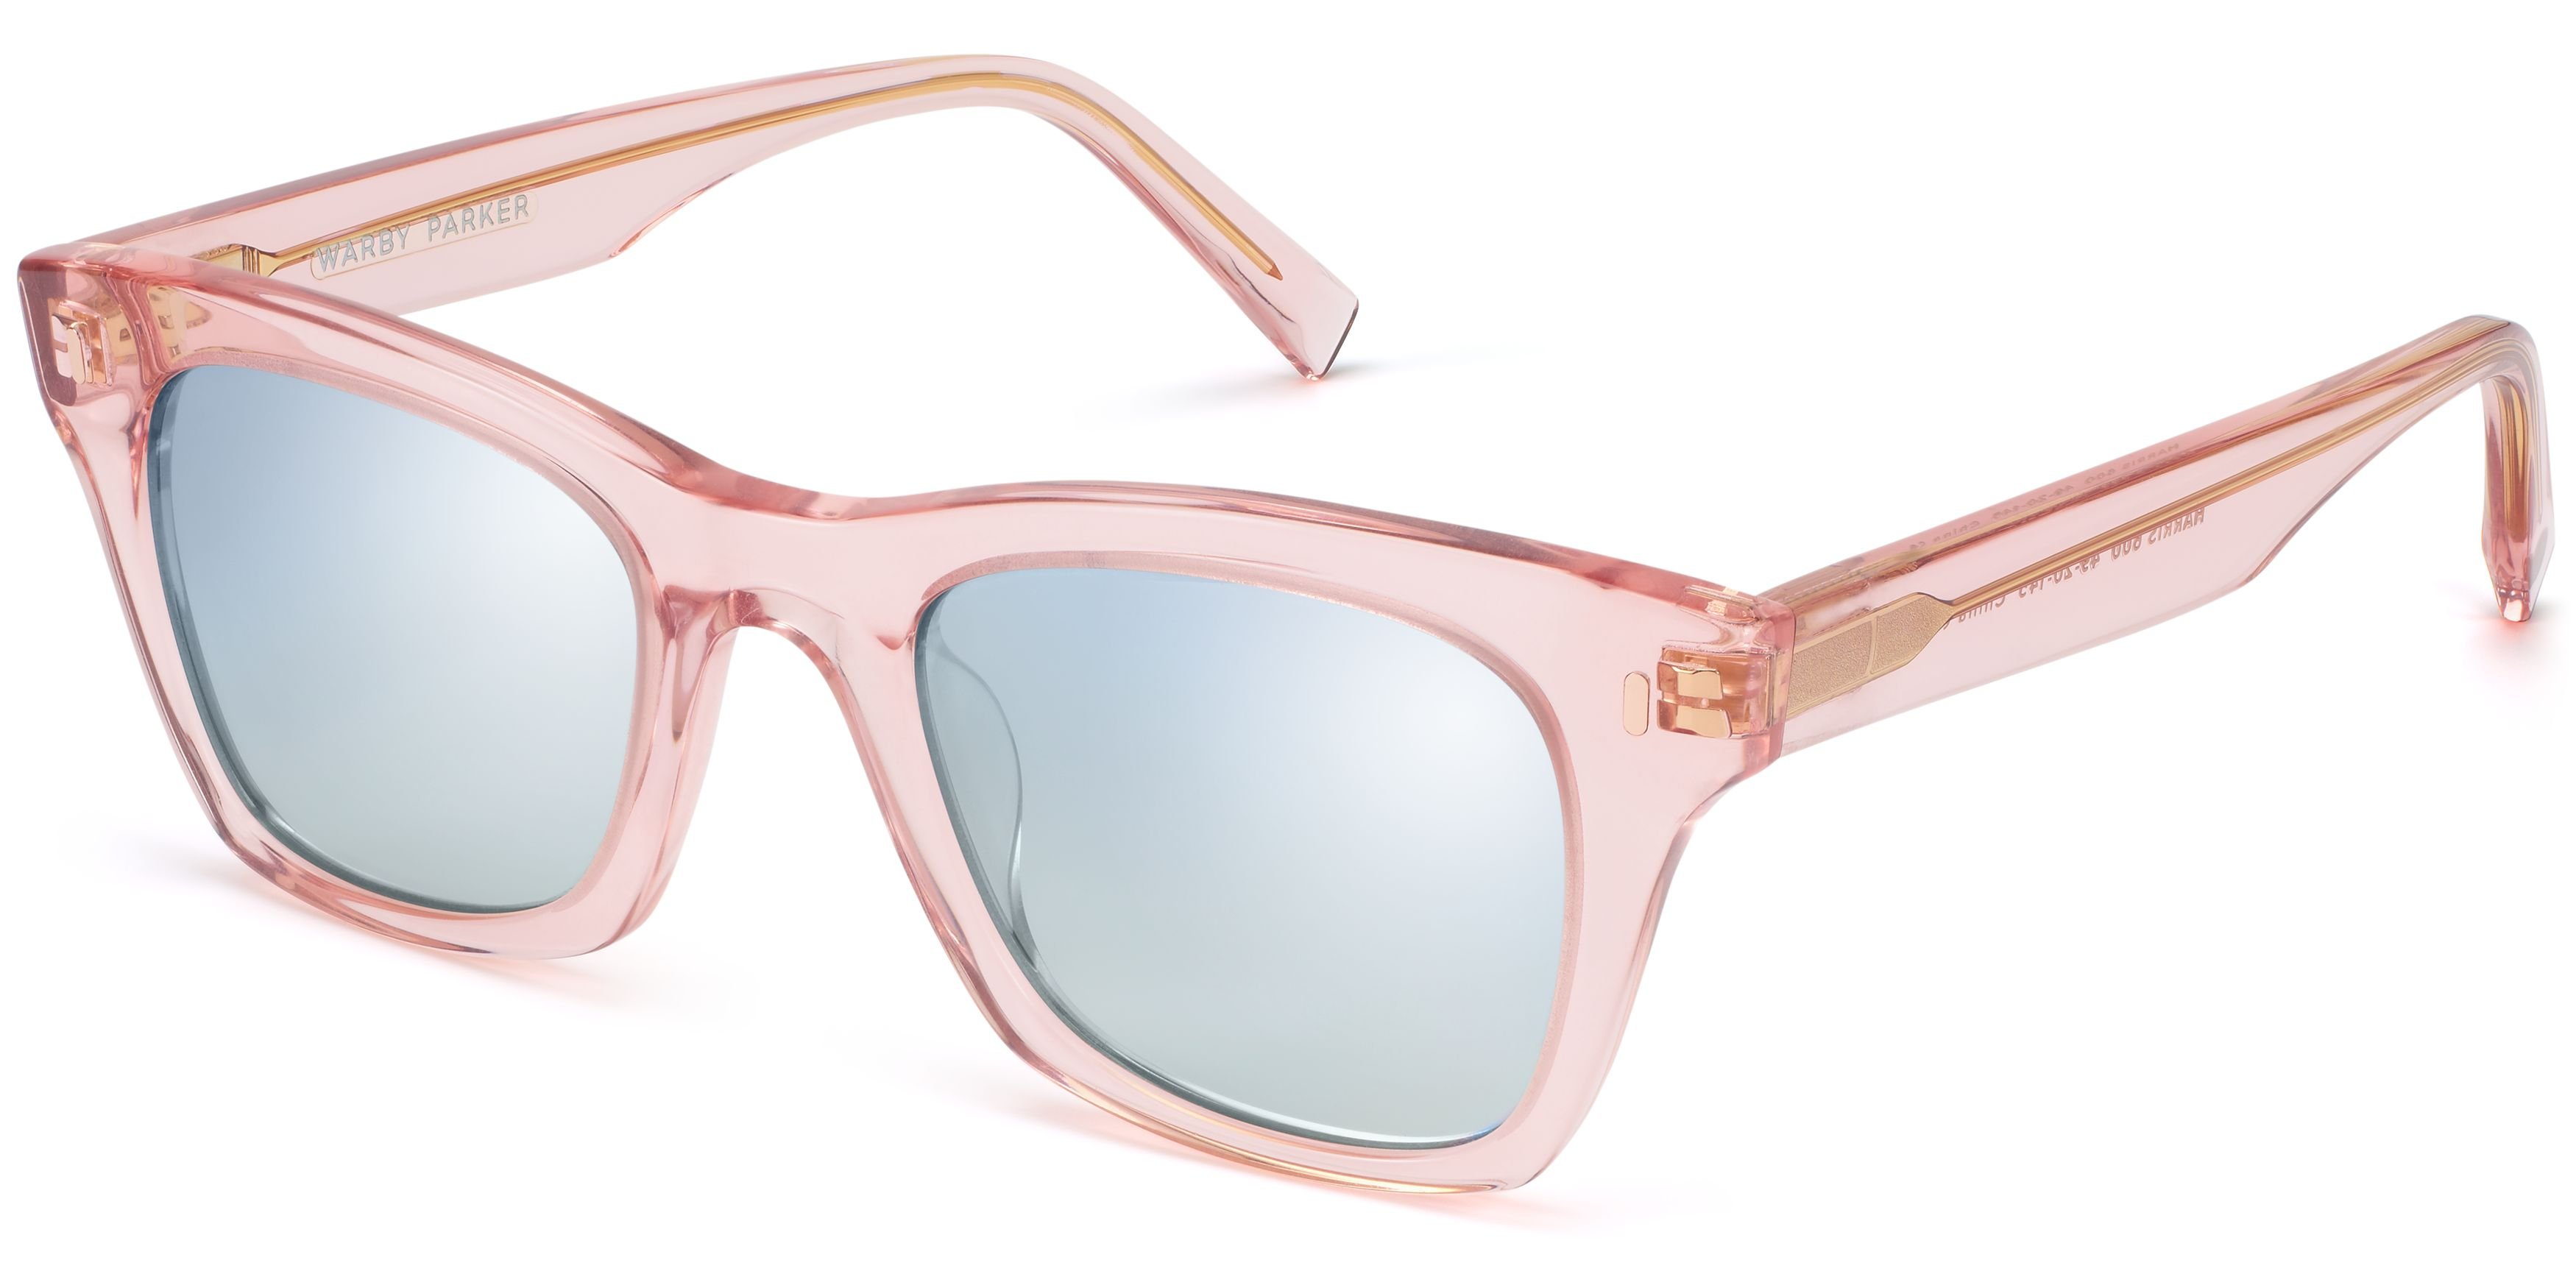 ed5ef3d66f Harris Sunglasses in Rose Crystal for Women